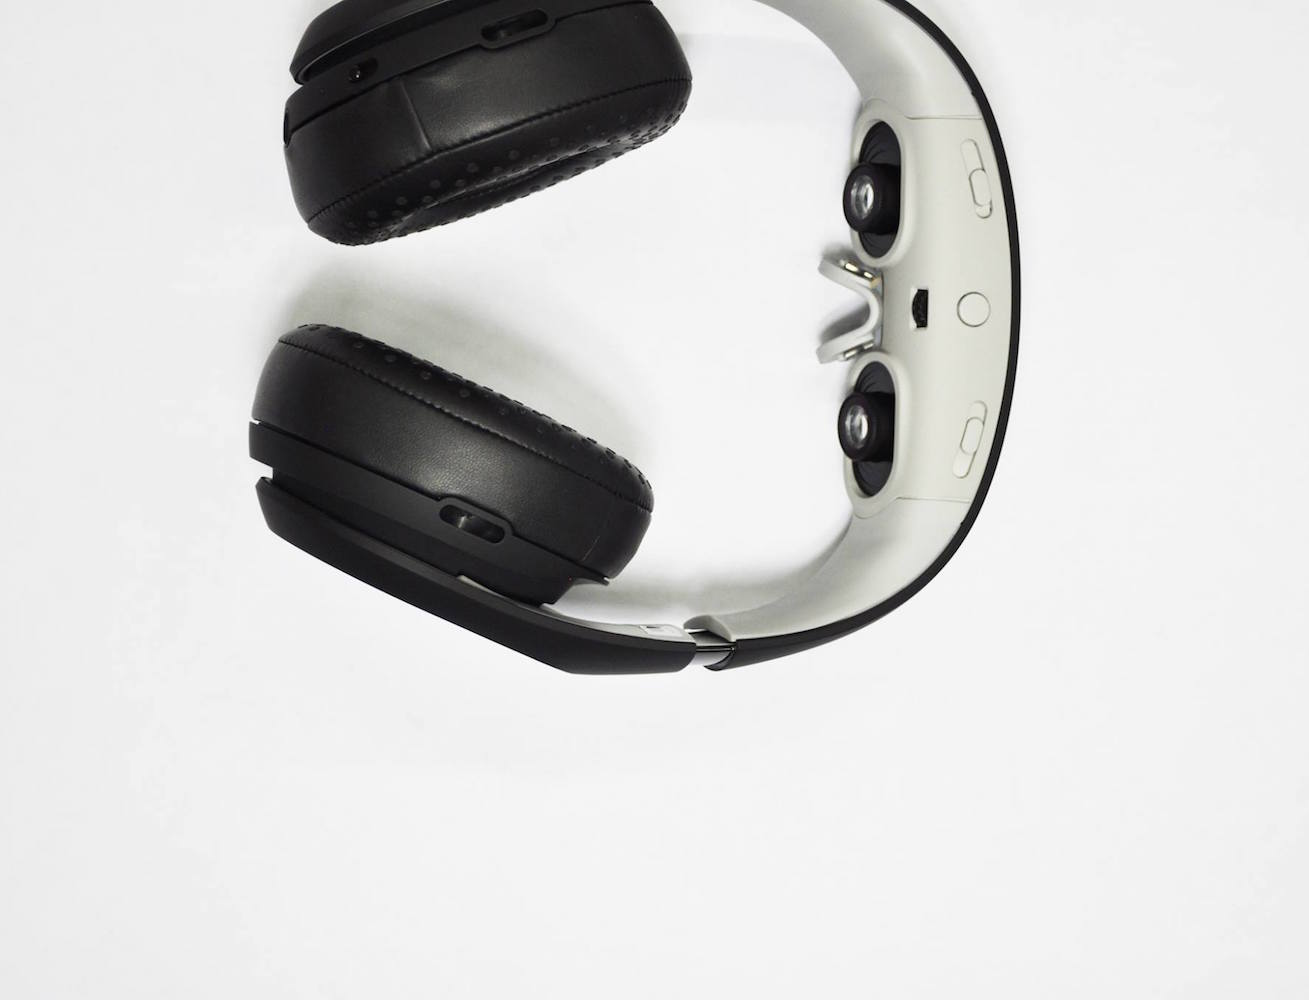 avegant-glyph-media-player-that-doubles-as-a-headset-04